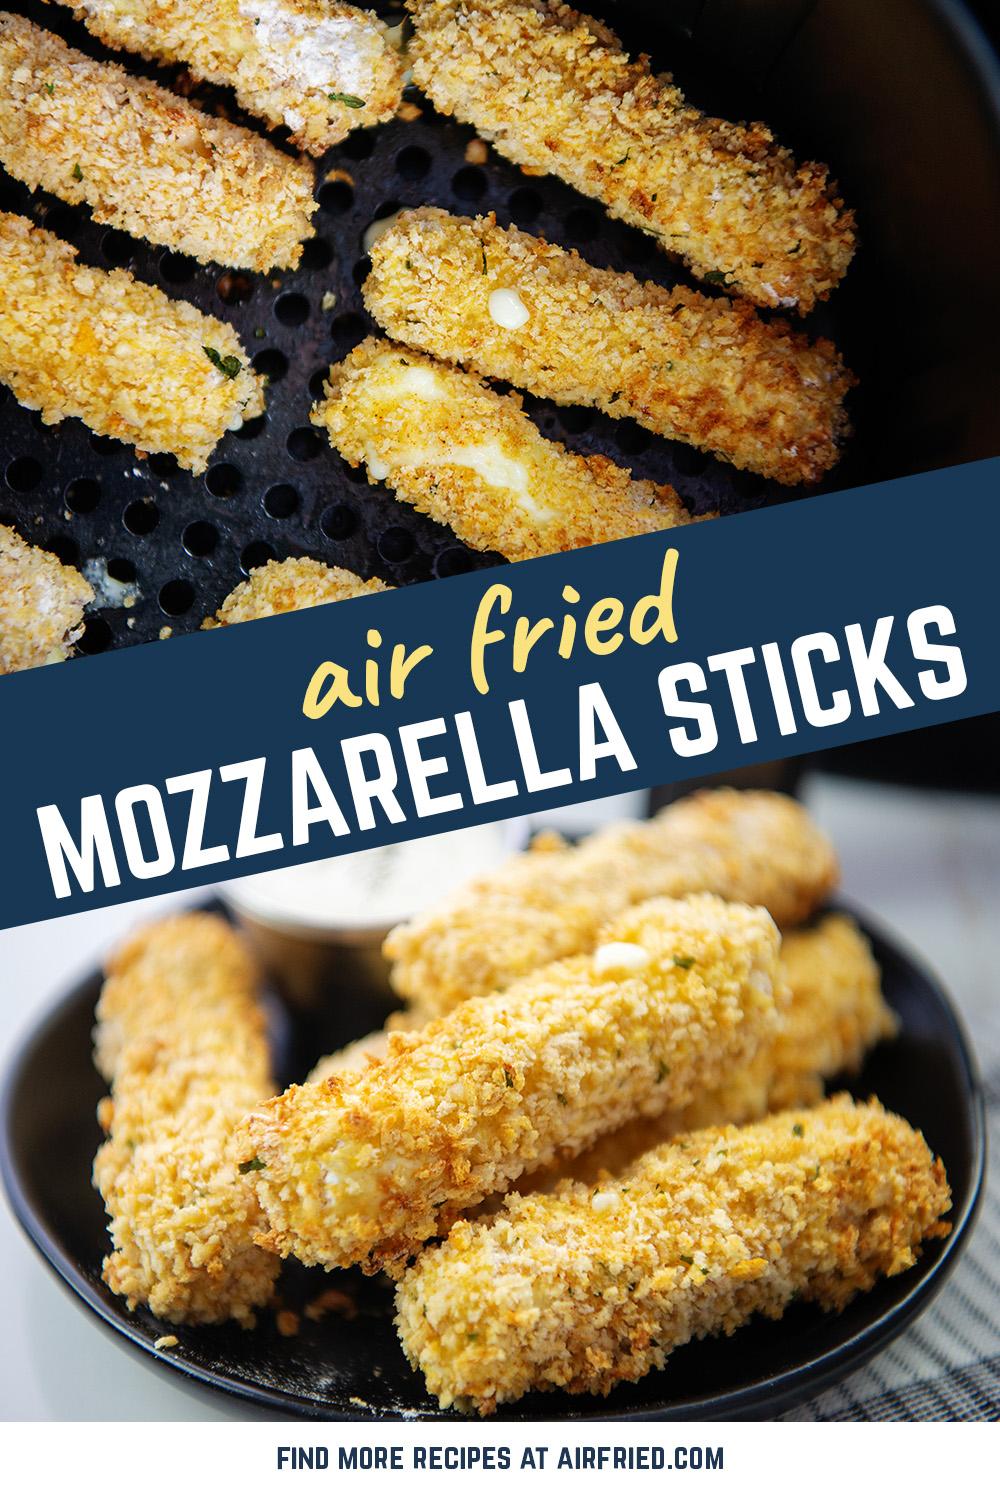 Our air fryer was perfect for whipping up a batch of homemade mozzarella sticks!  #cheesy #airfried #appetizerrecipes